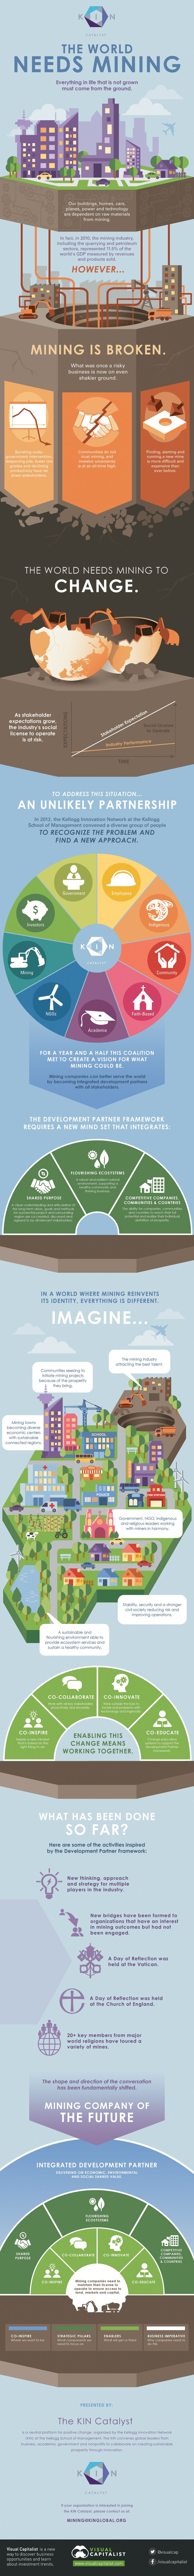 Unique Infographic Design, A New Vision for the Mining Company of the Future via @claudioc #Infographic #Design